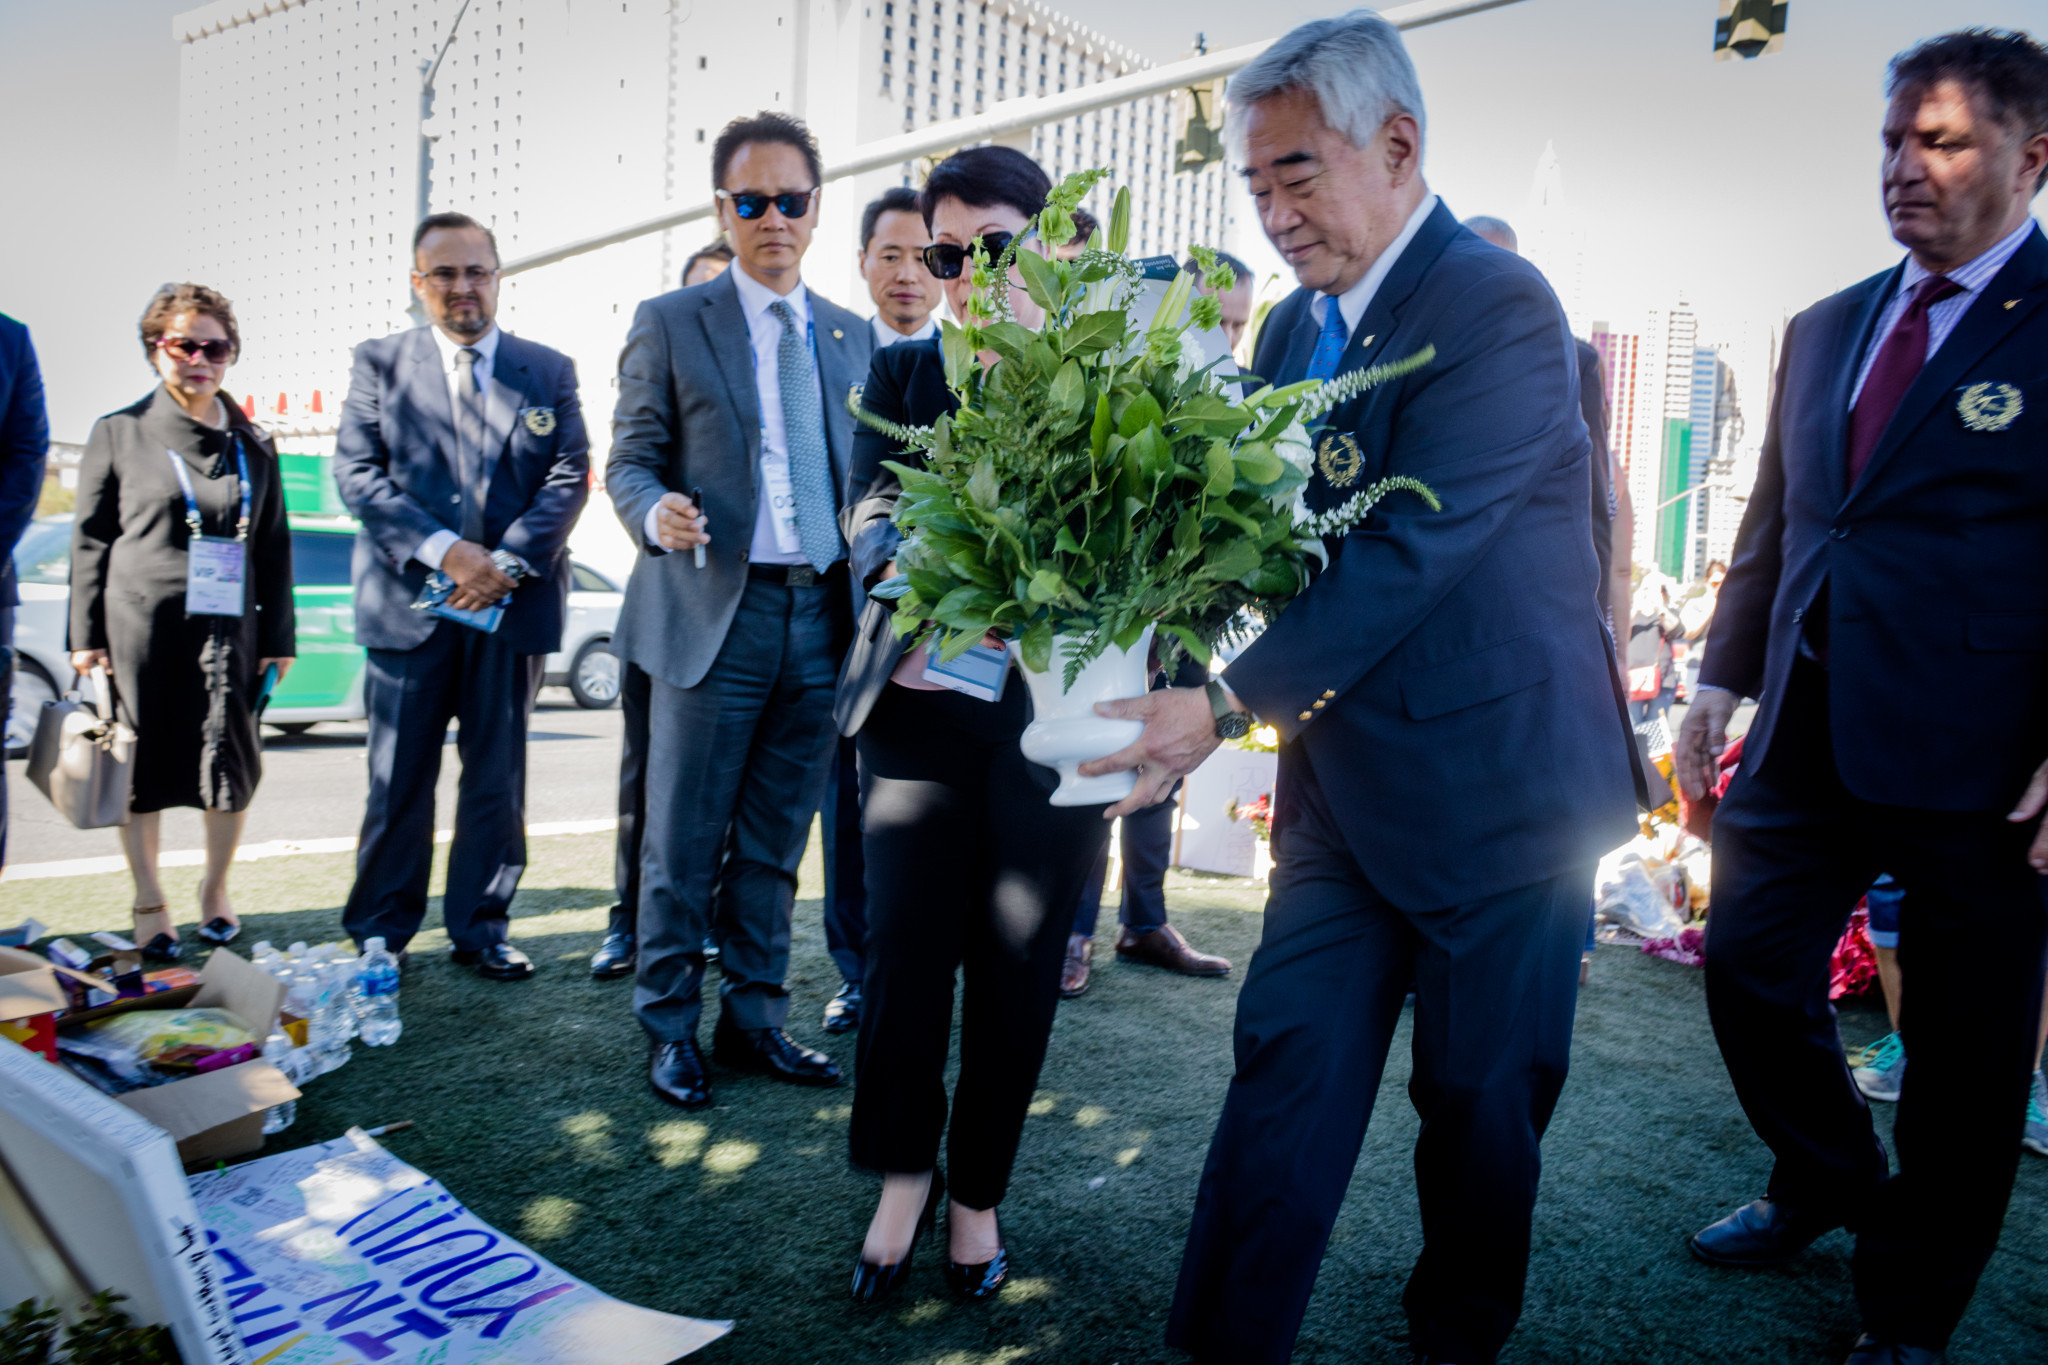 World Taekwondo President pays tribute at site of Las Vegas shooting